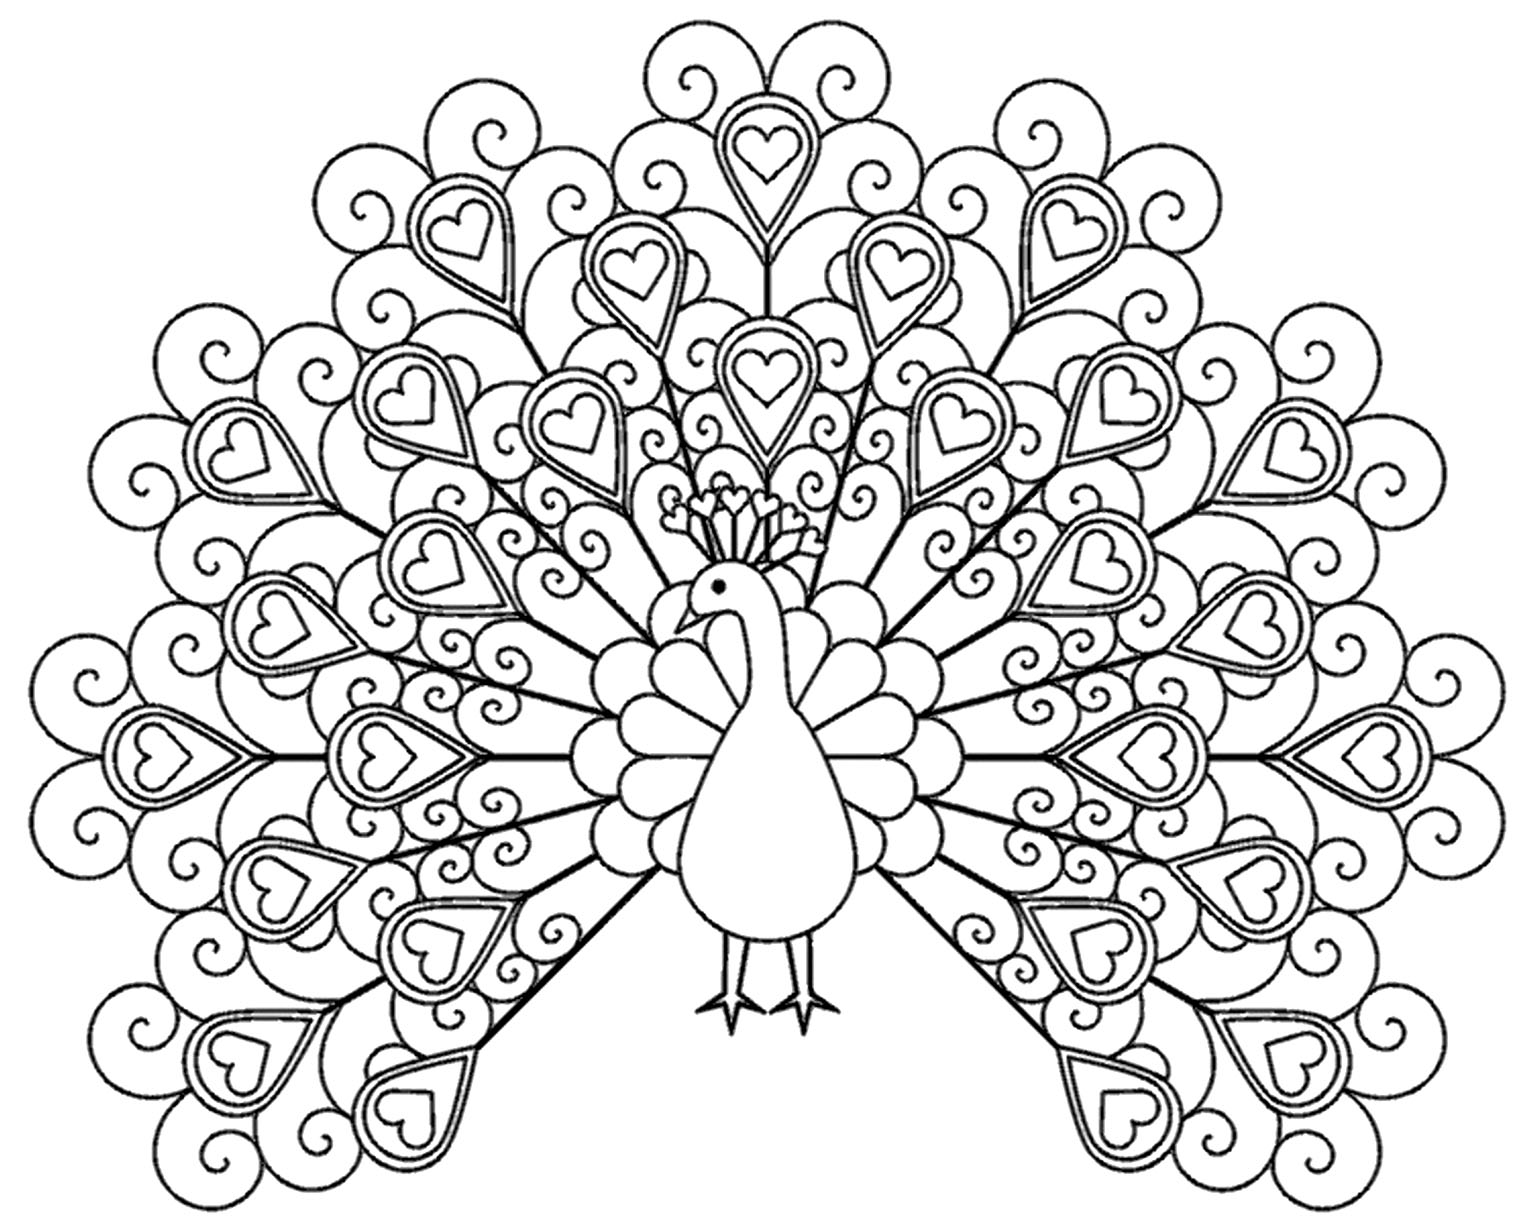 easy cute peacock coloring pages free peacock coloring sheet embroidery pinterest coloring cute peacock easy pages